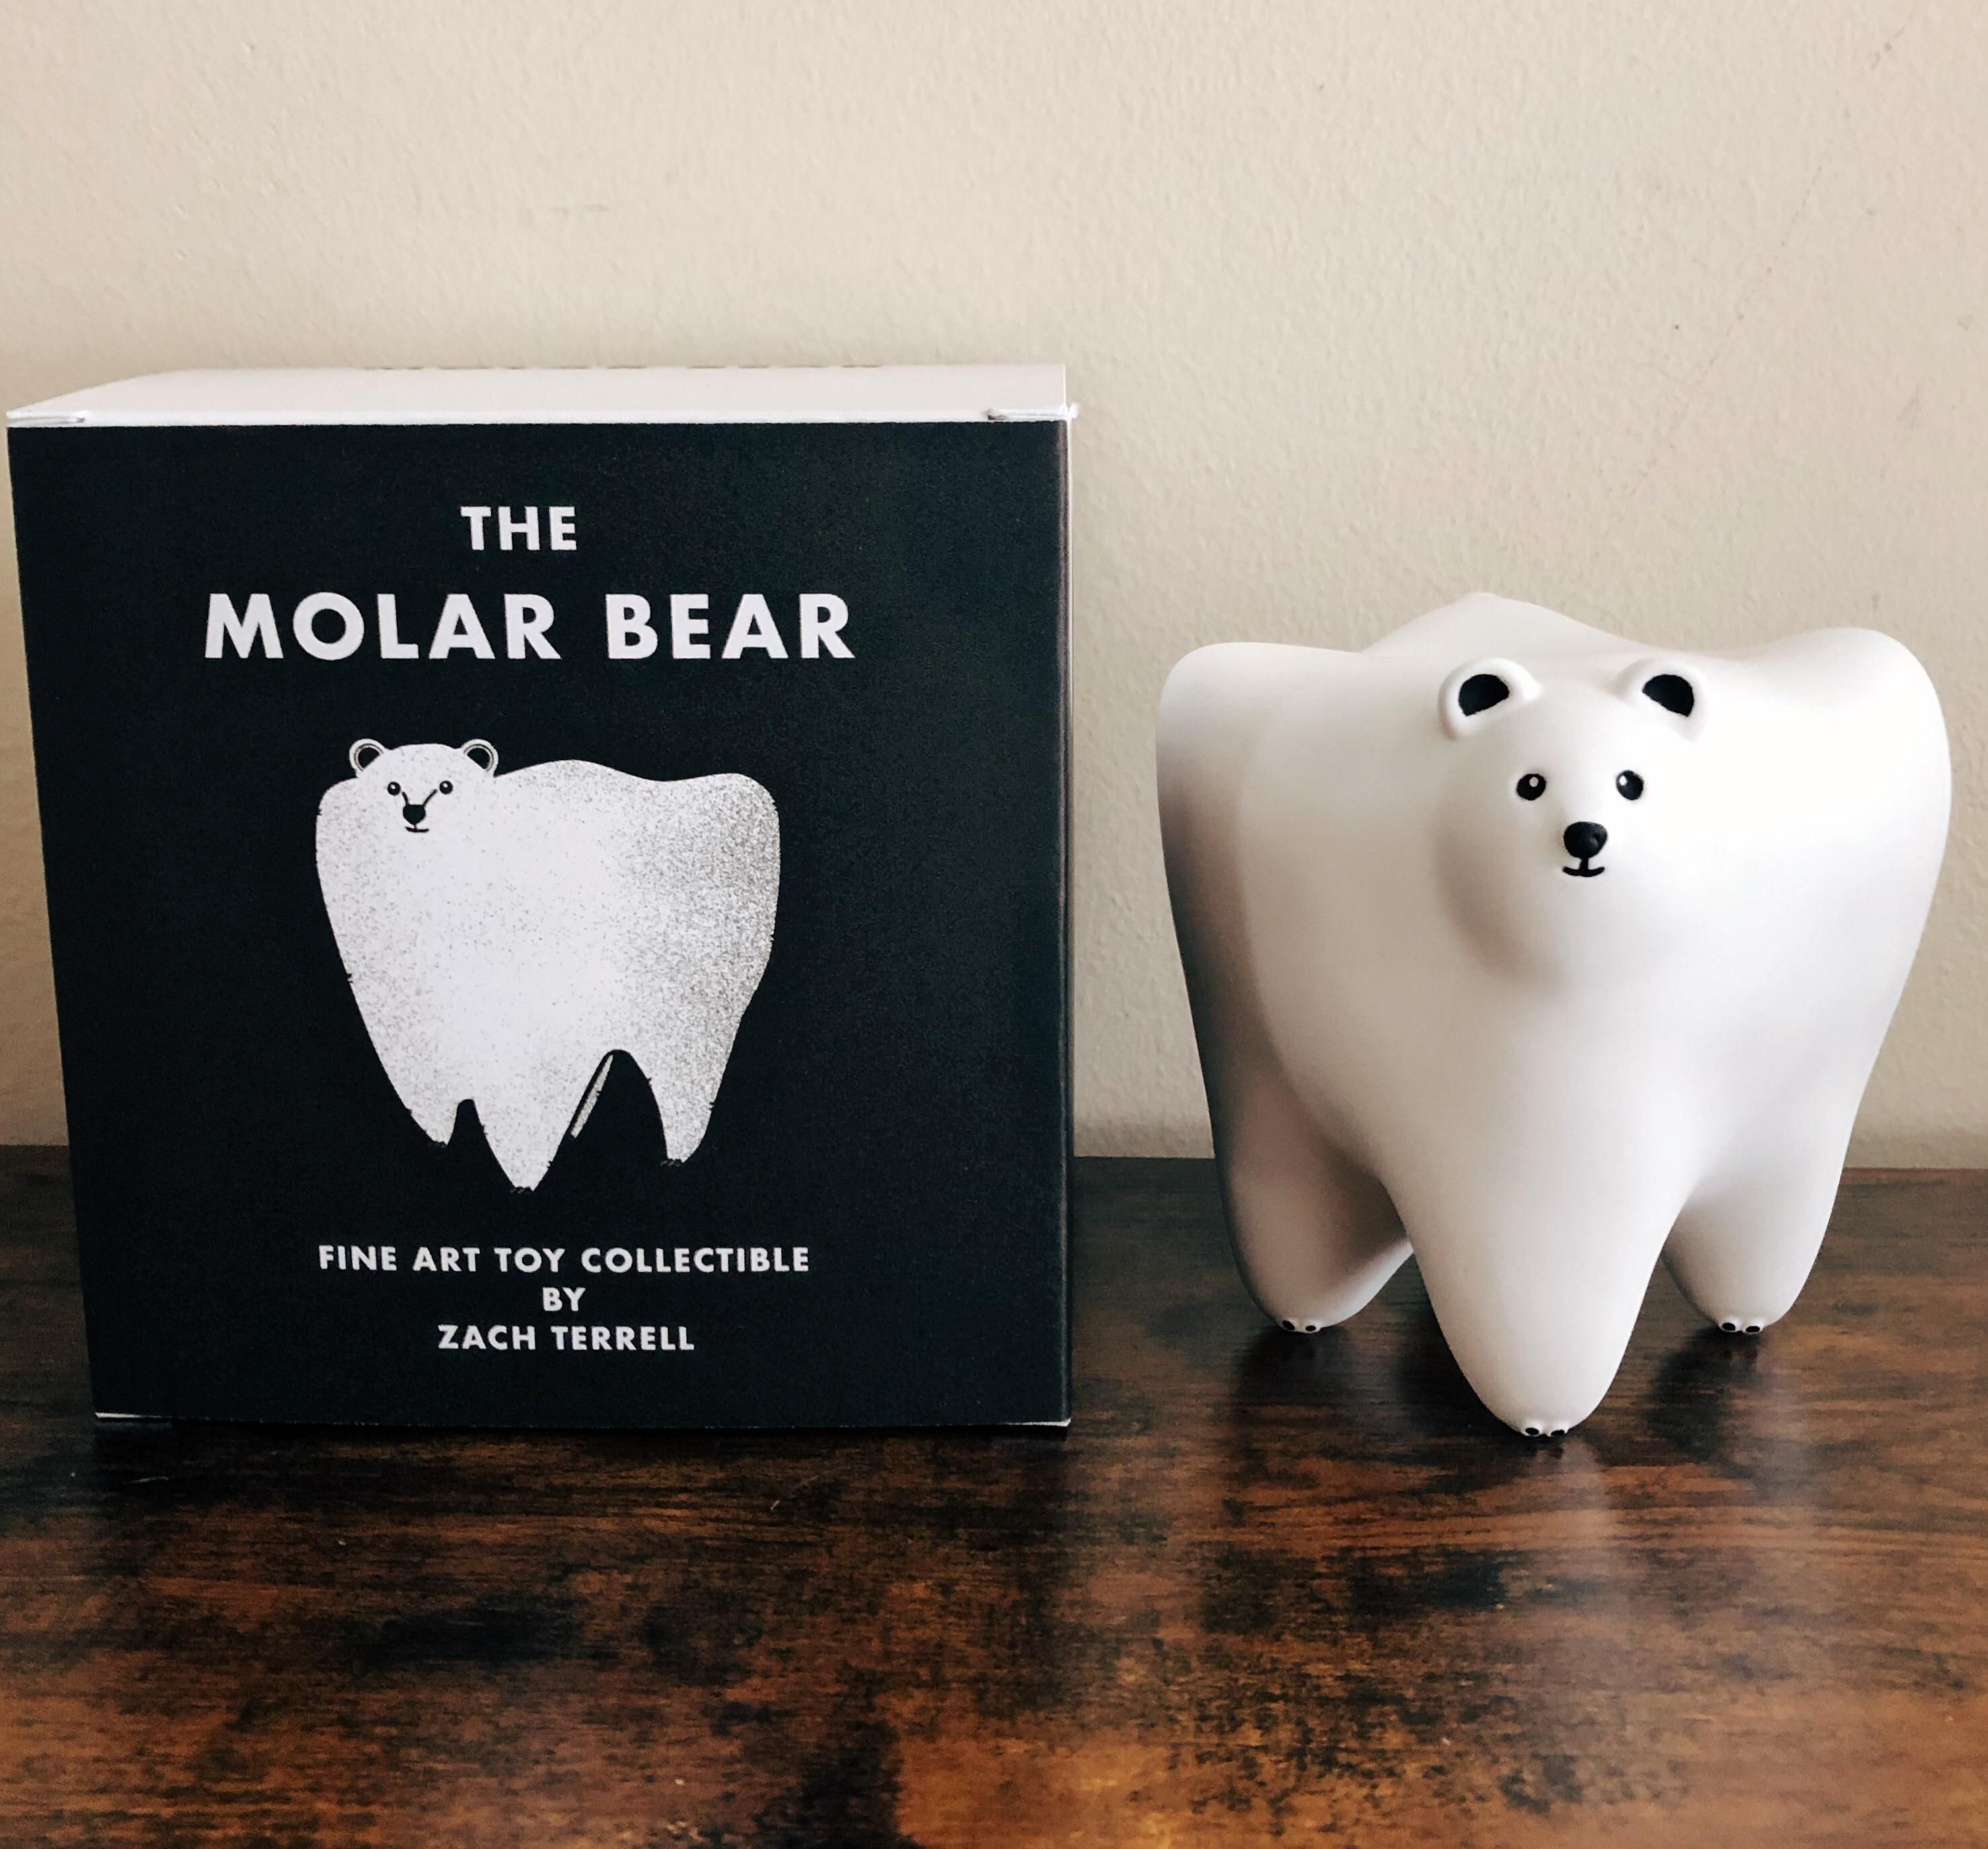 You guys liked the artwork a couple of years ago, so I wanted to show you the figure! Meet the Molar Bear!